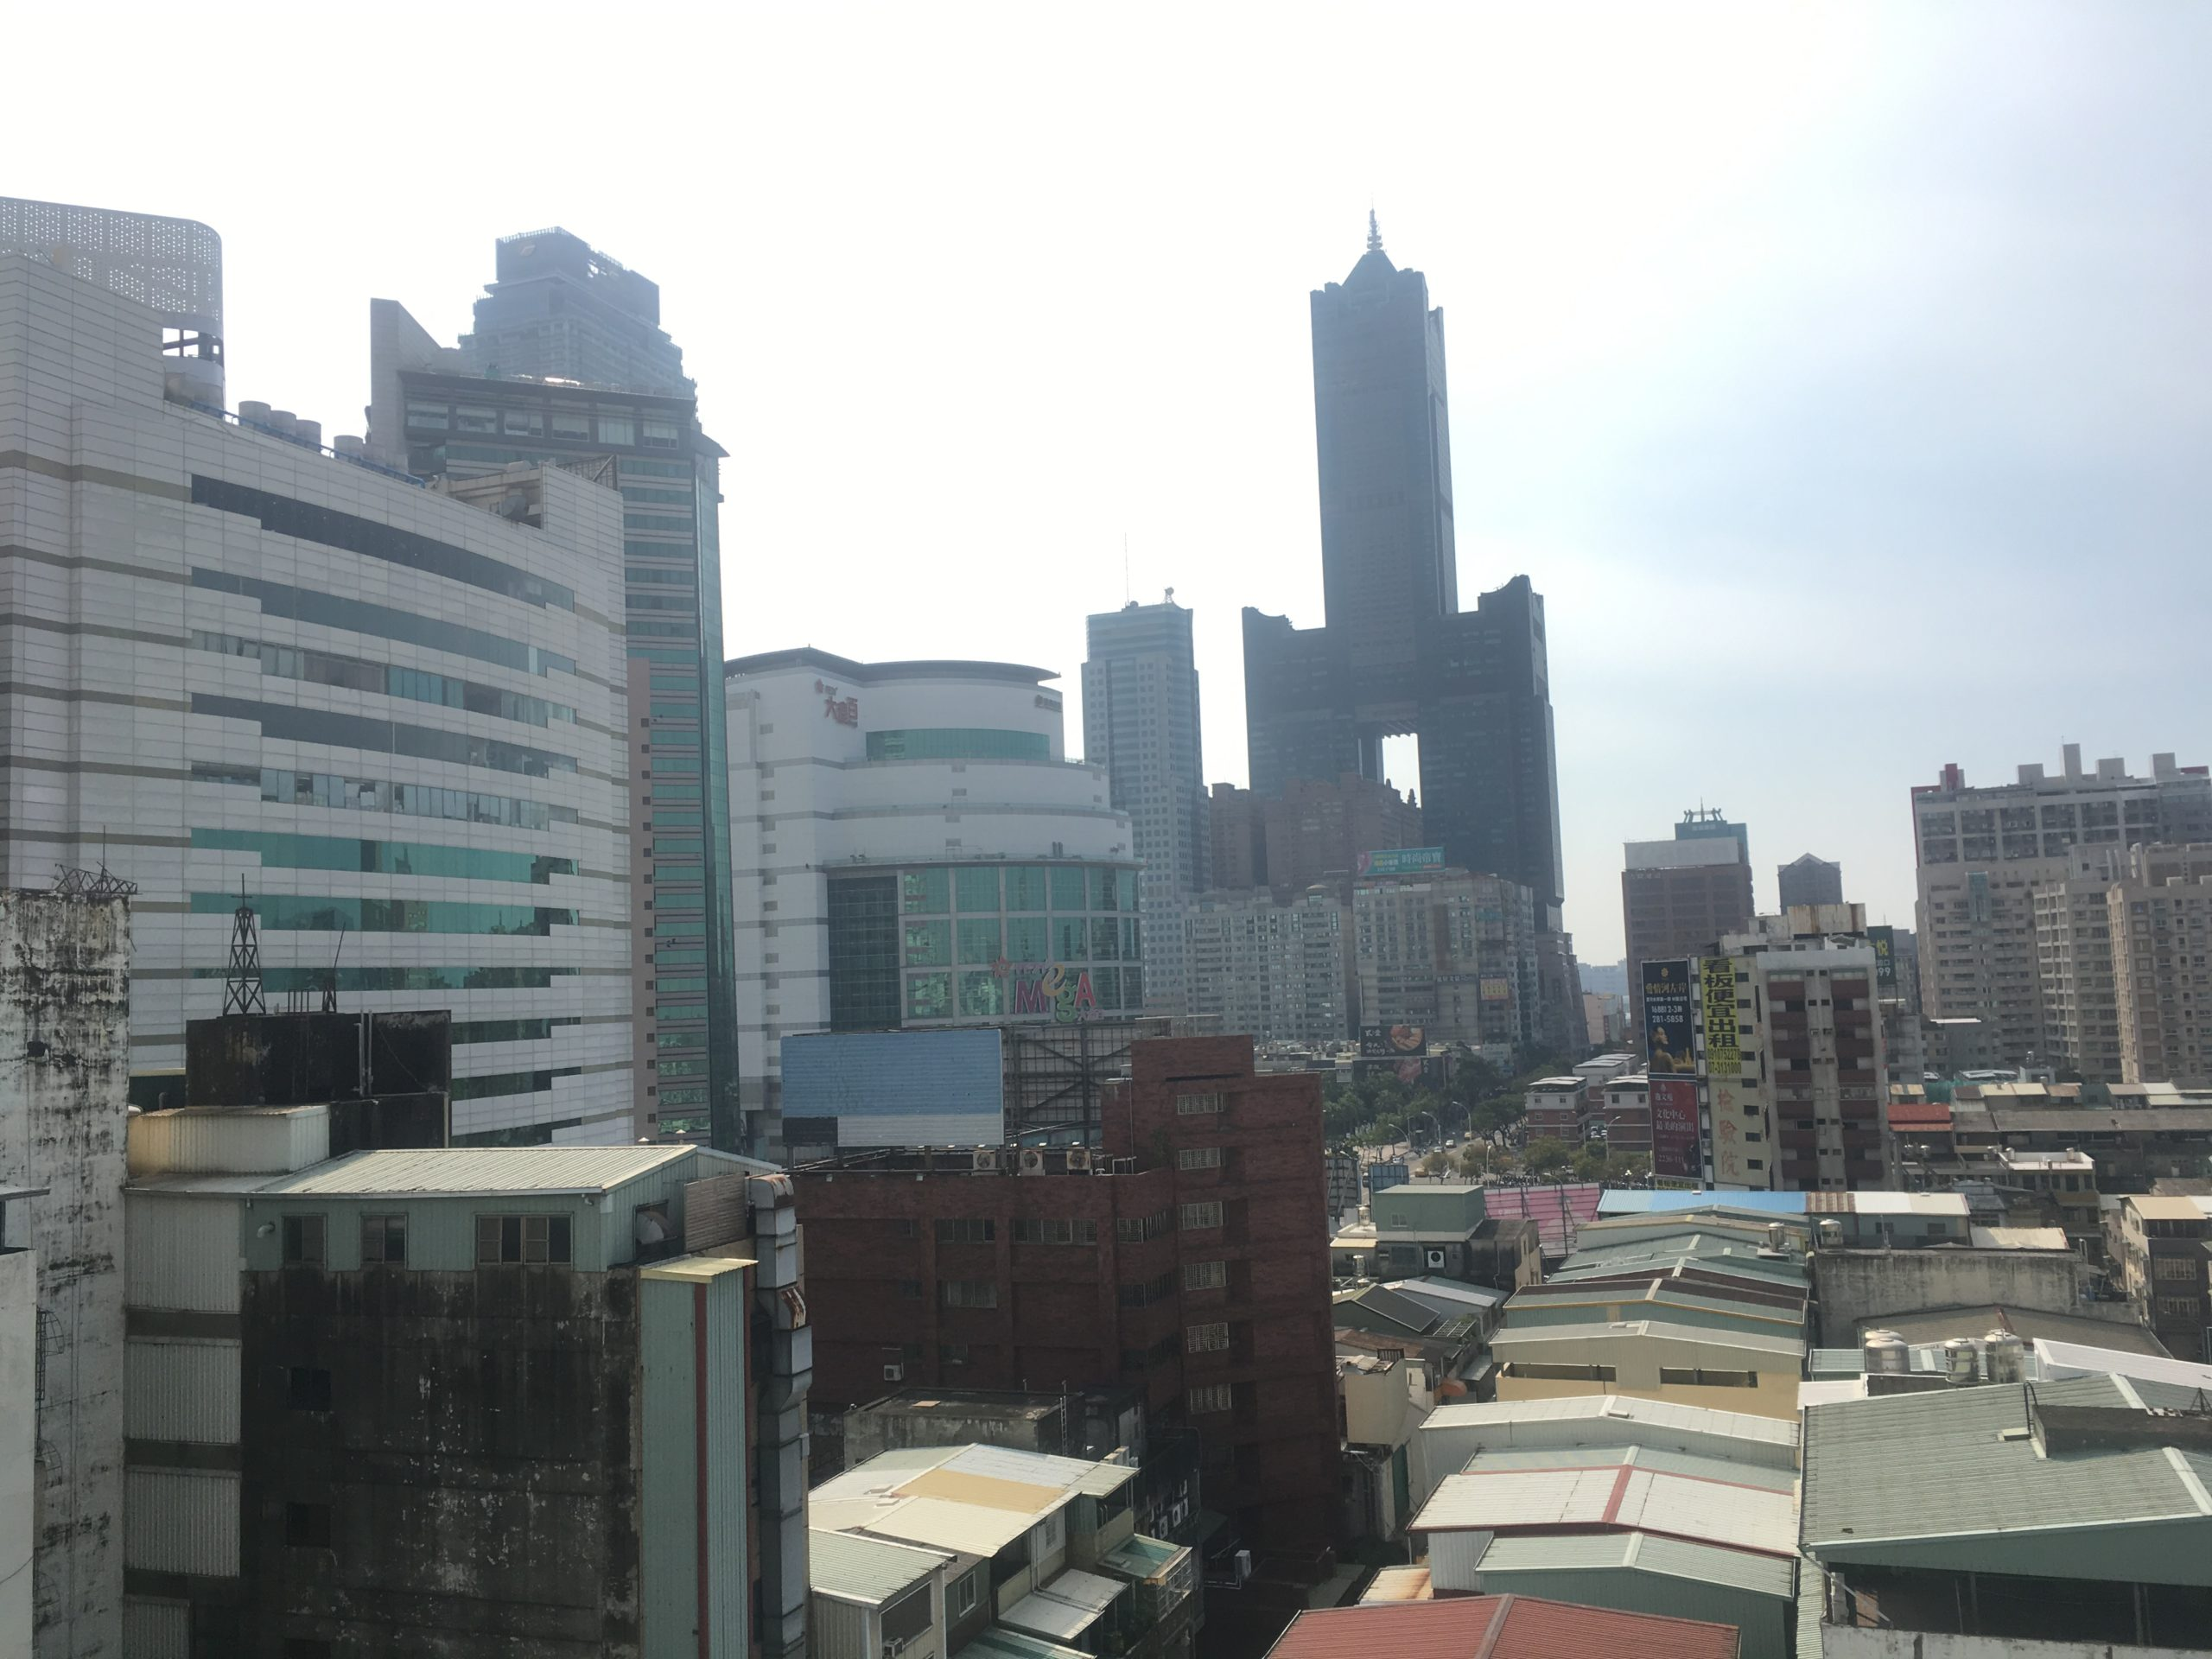 Day inner city Kaohsiung from balcony of R8Hotel